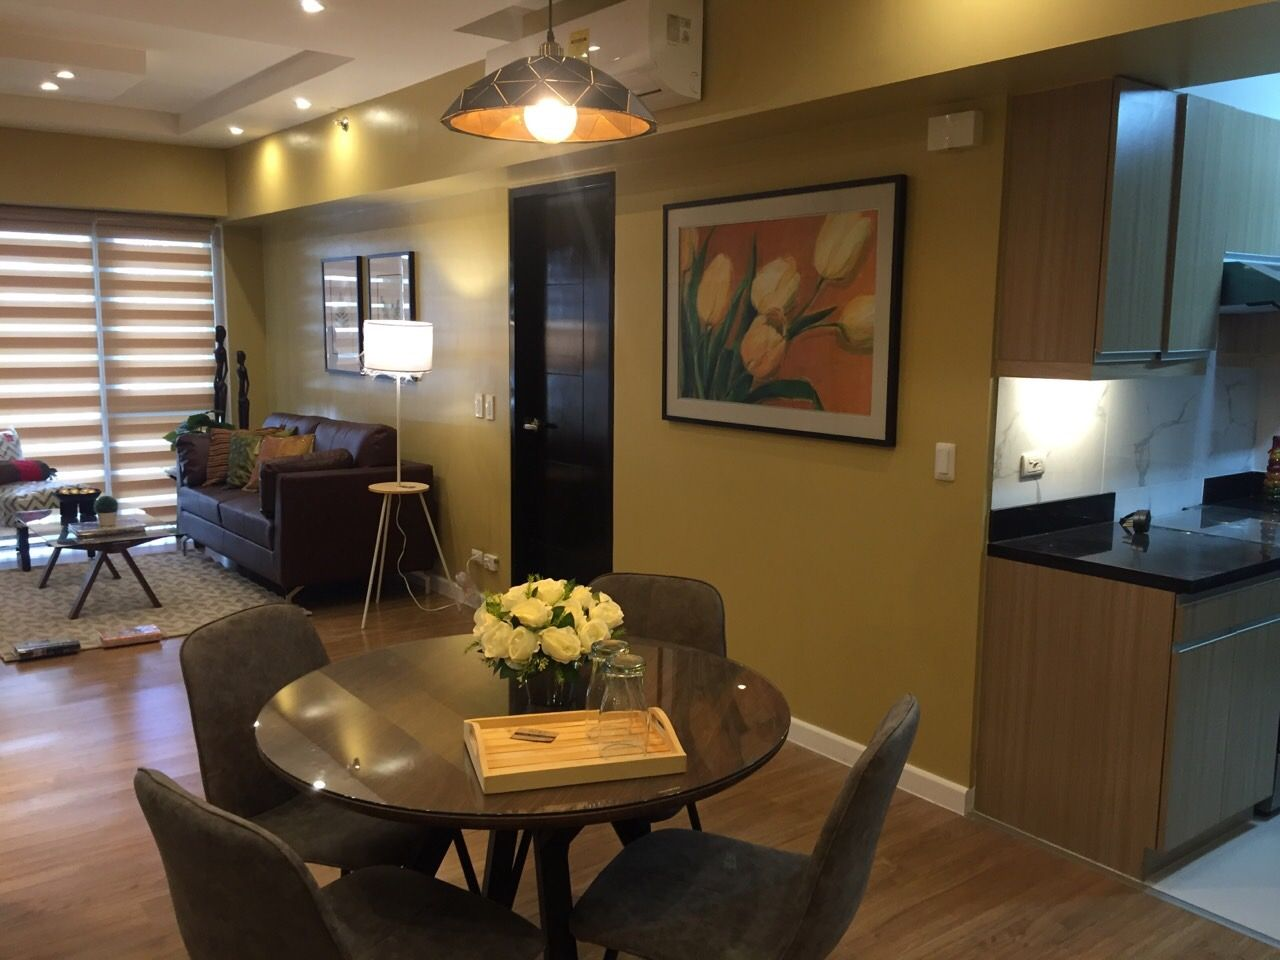 1 Bedroom Condo For Rent In Bgc Taguig City 64sqm One Meridian Tower 2 8th Floor Fully Furnished With Parking With Bal Condos For Rent Furnishings Taguig